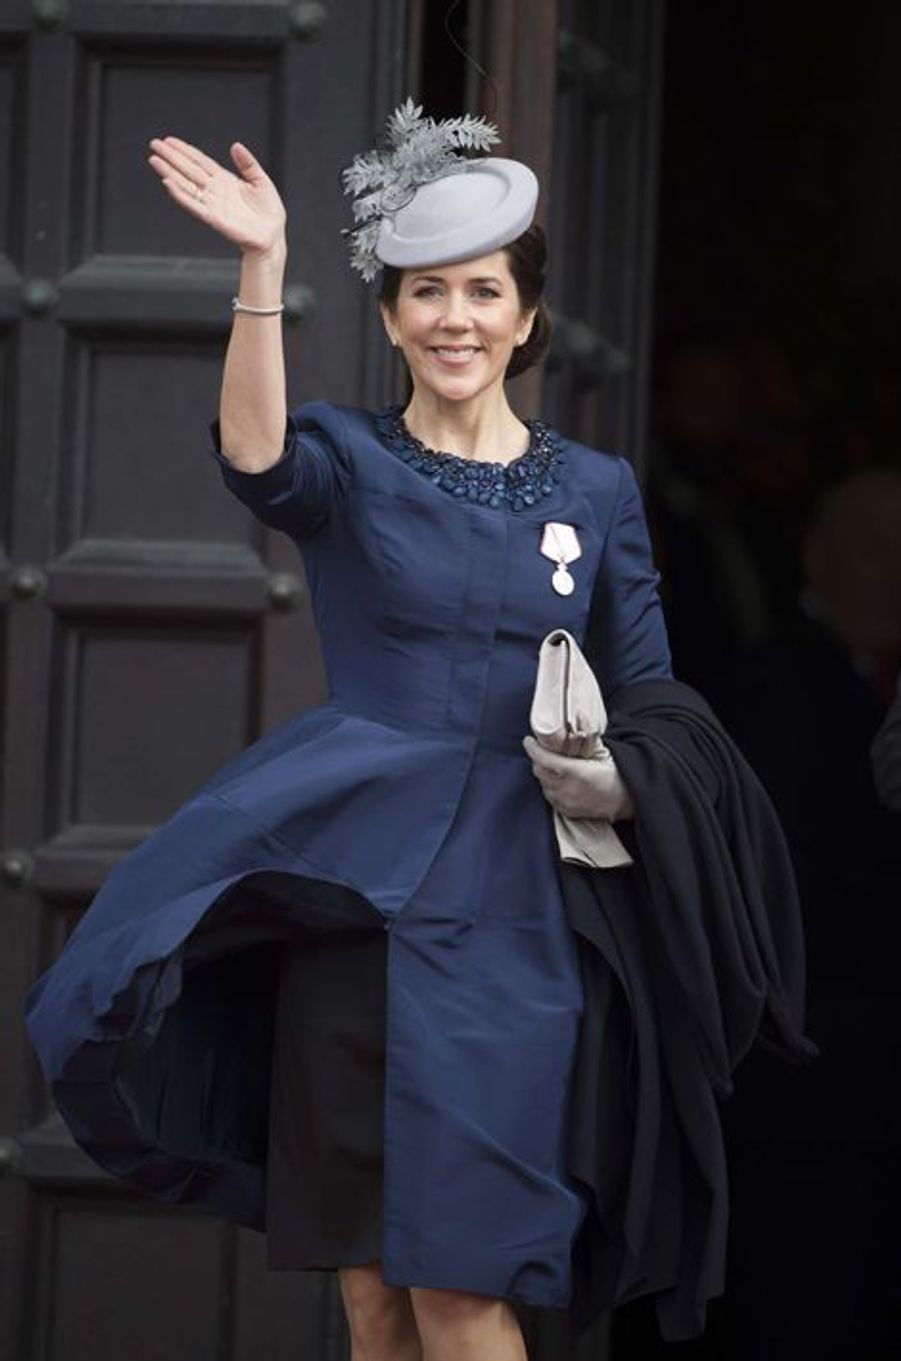 La princesse Mary de Danemark à Copenhague, le 16 avril 2015